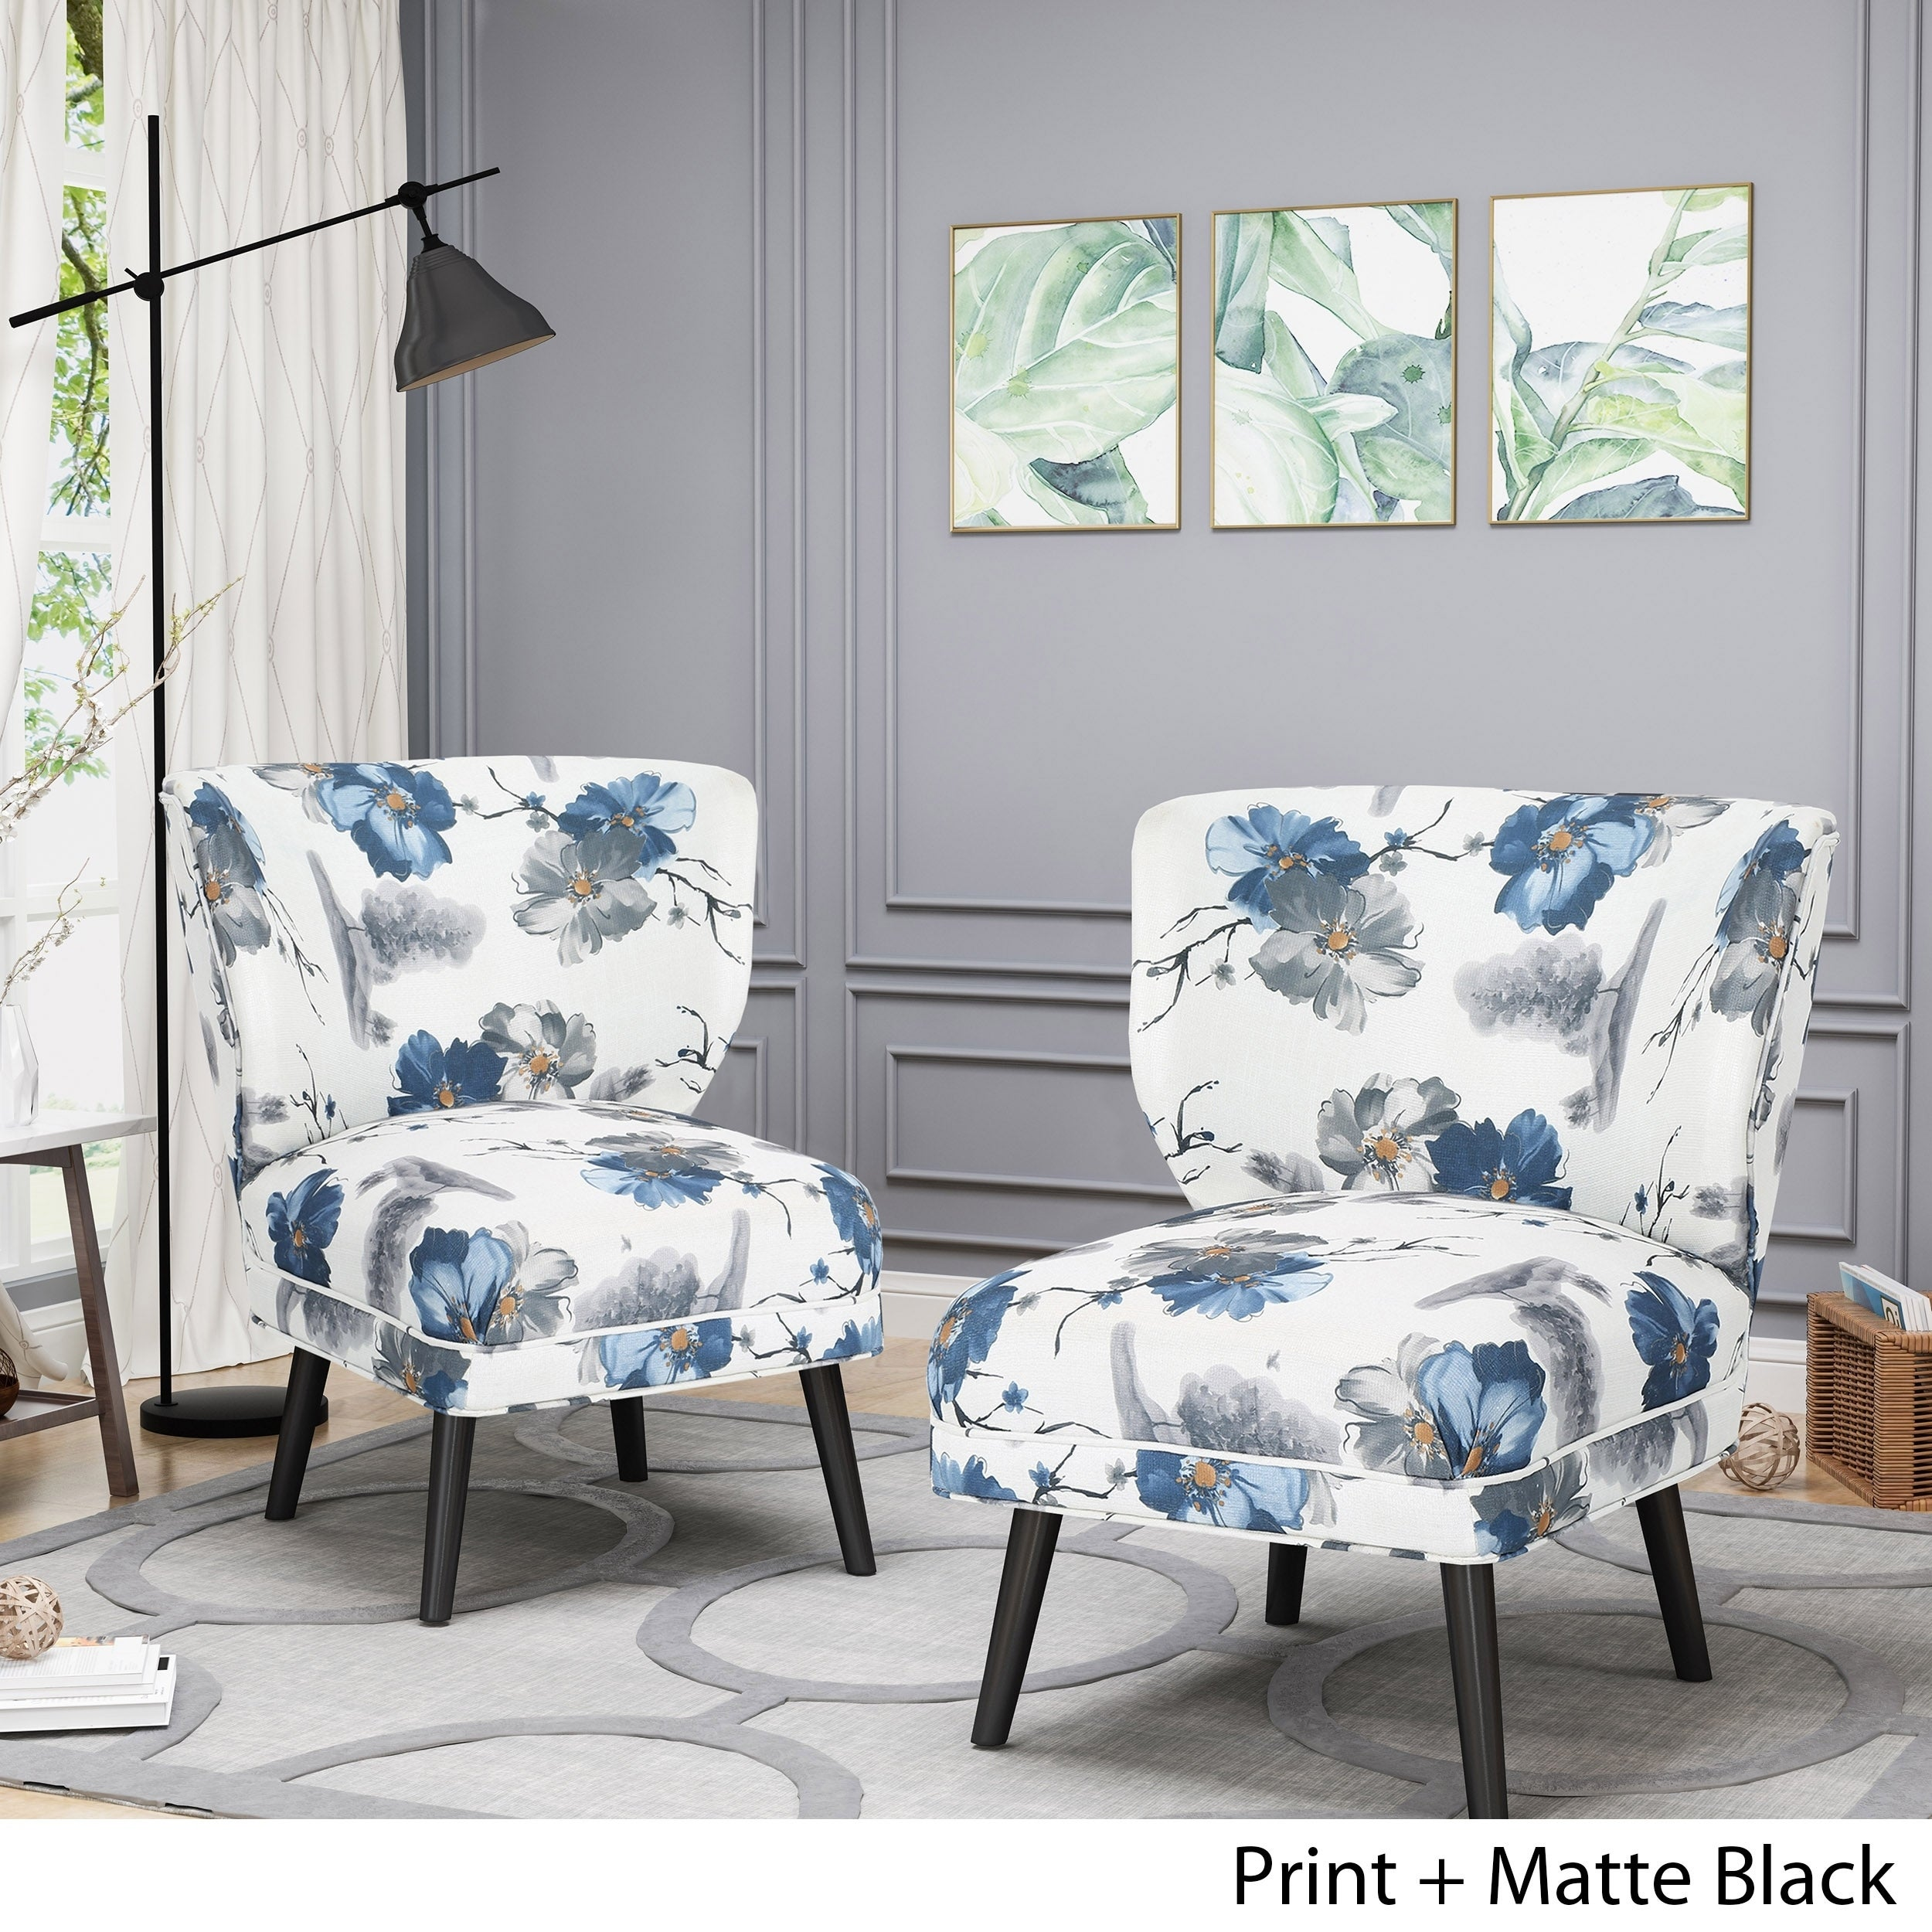 Shop desdemona modern farmhouse accent chairs set of 2 by chirstopher knight home free shipping today overstock com 22727912